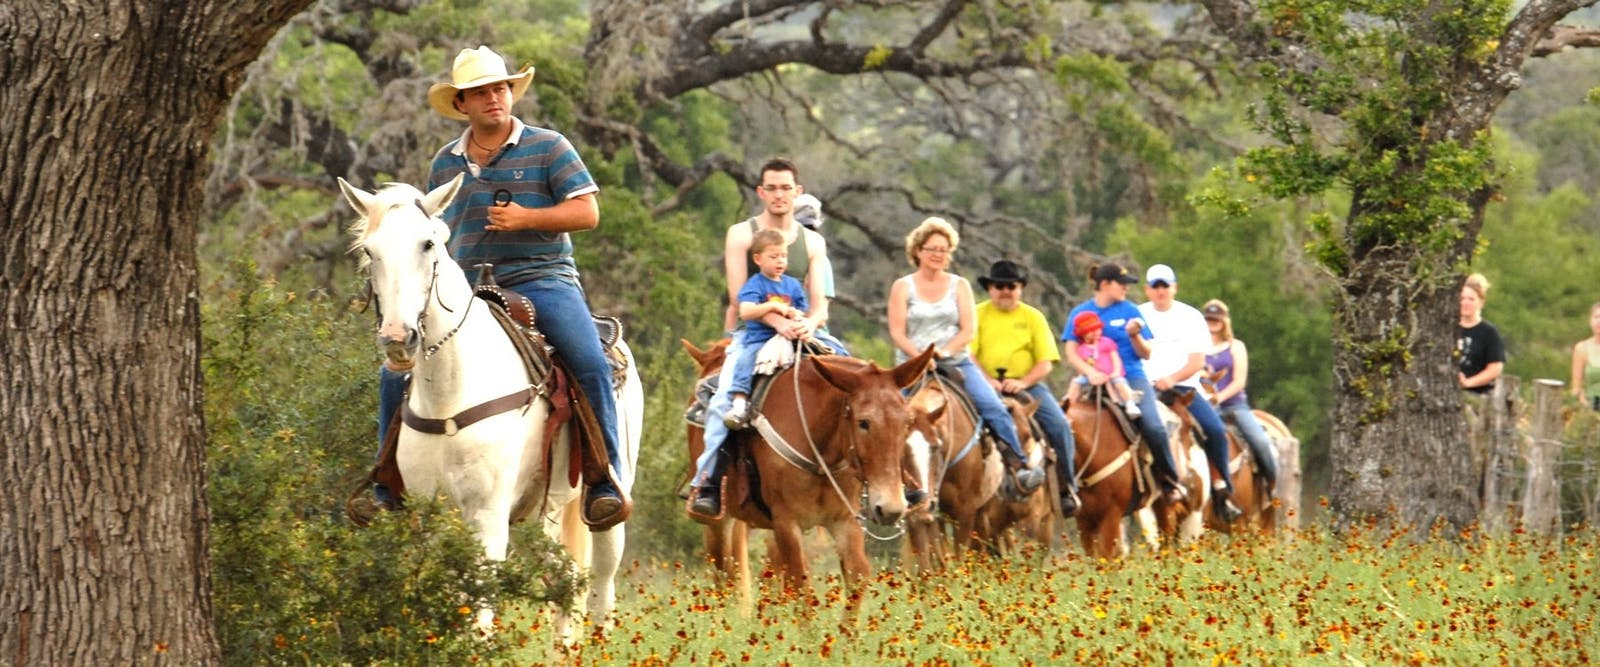 Group Riding At Dixie Dude Ranch